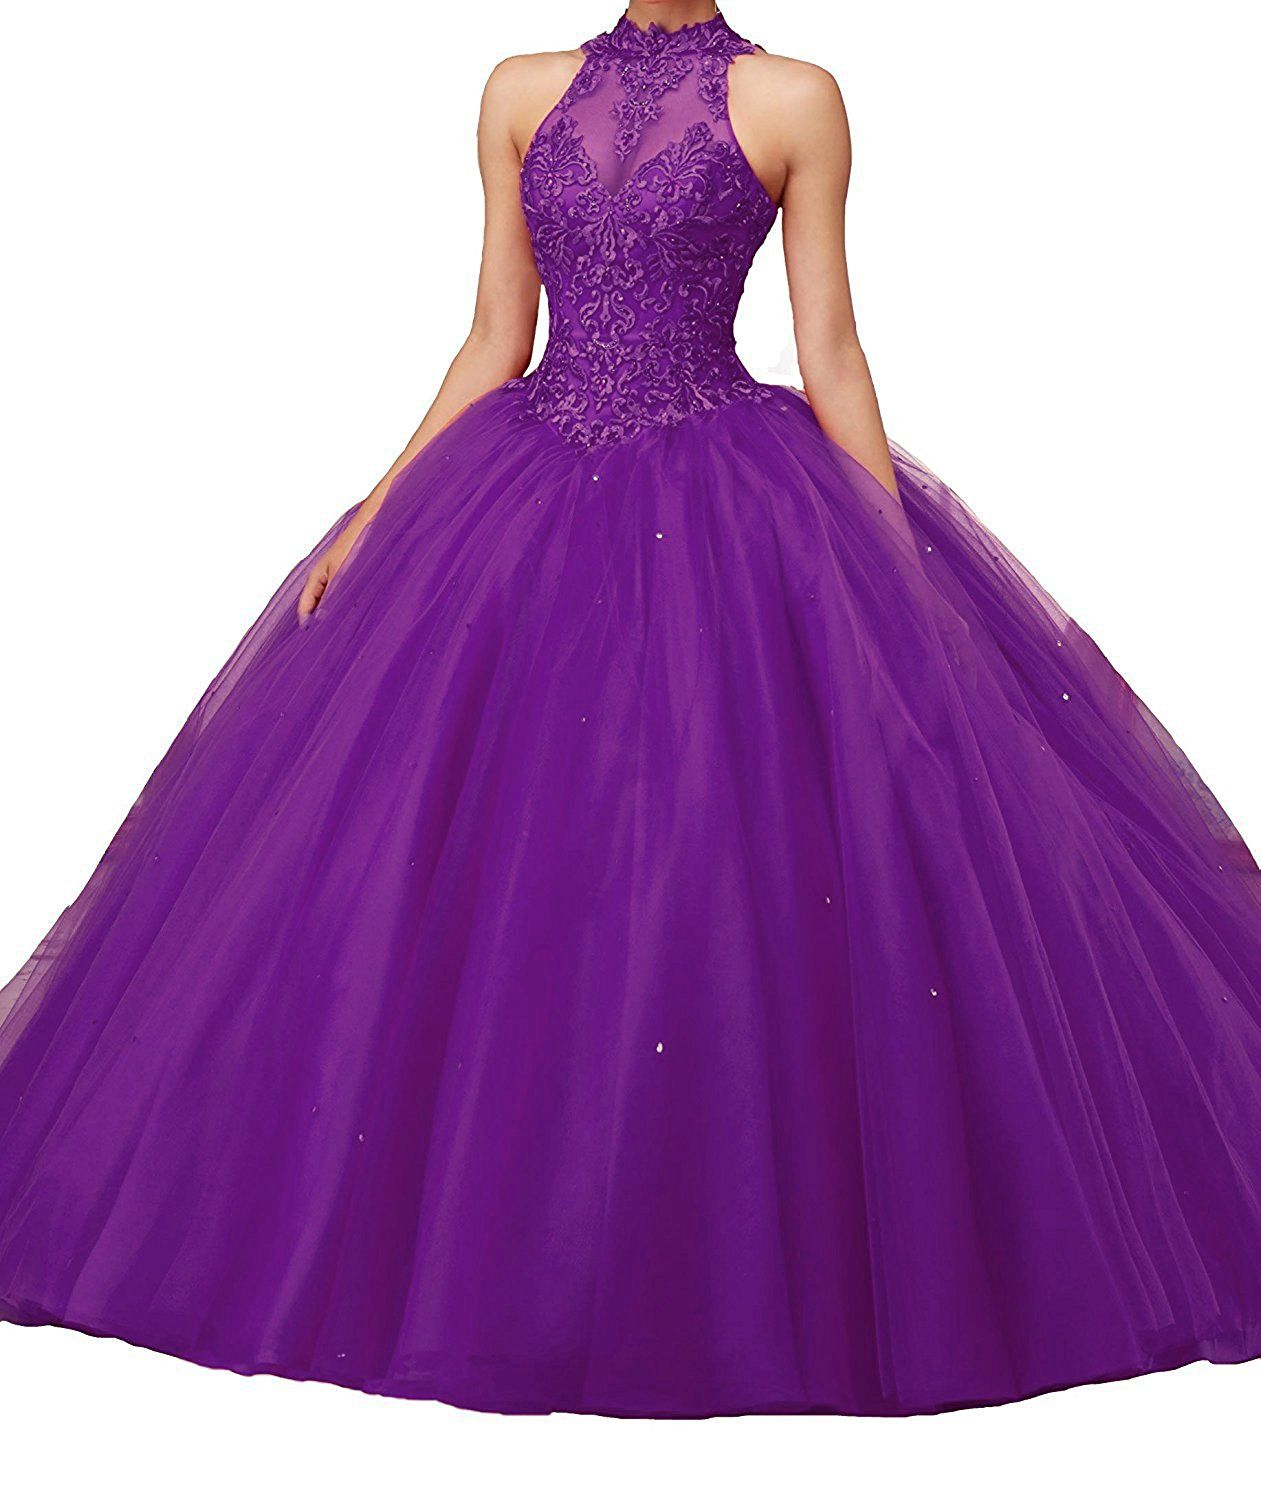 Lisa high neck puffy ombre prom dresses lace ball gown quinceanera